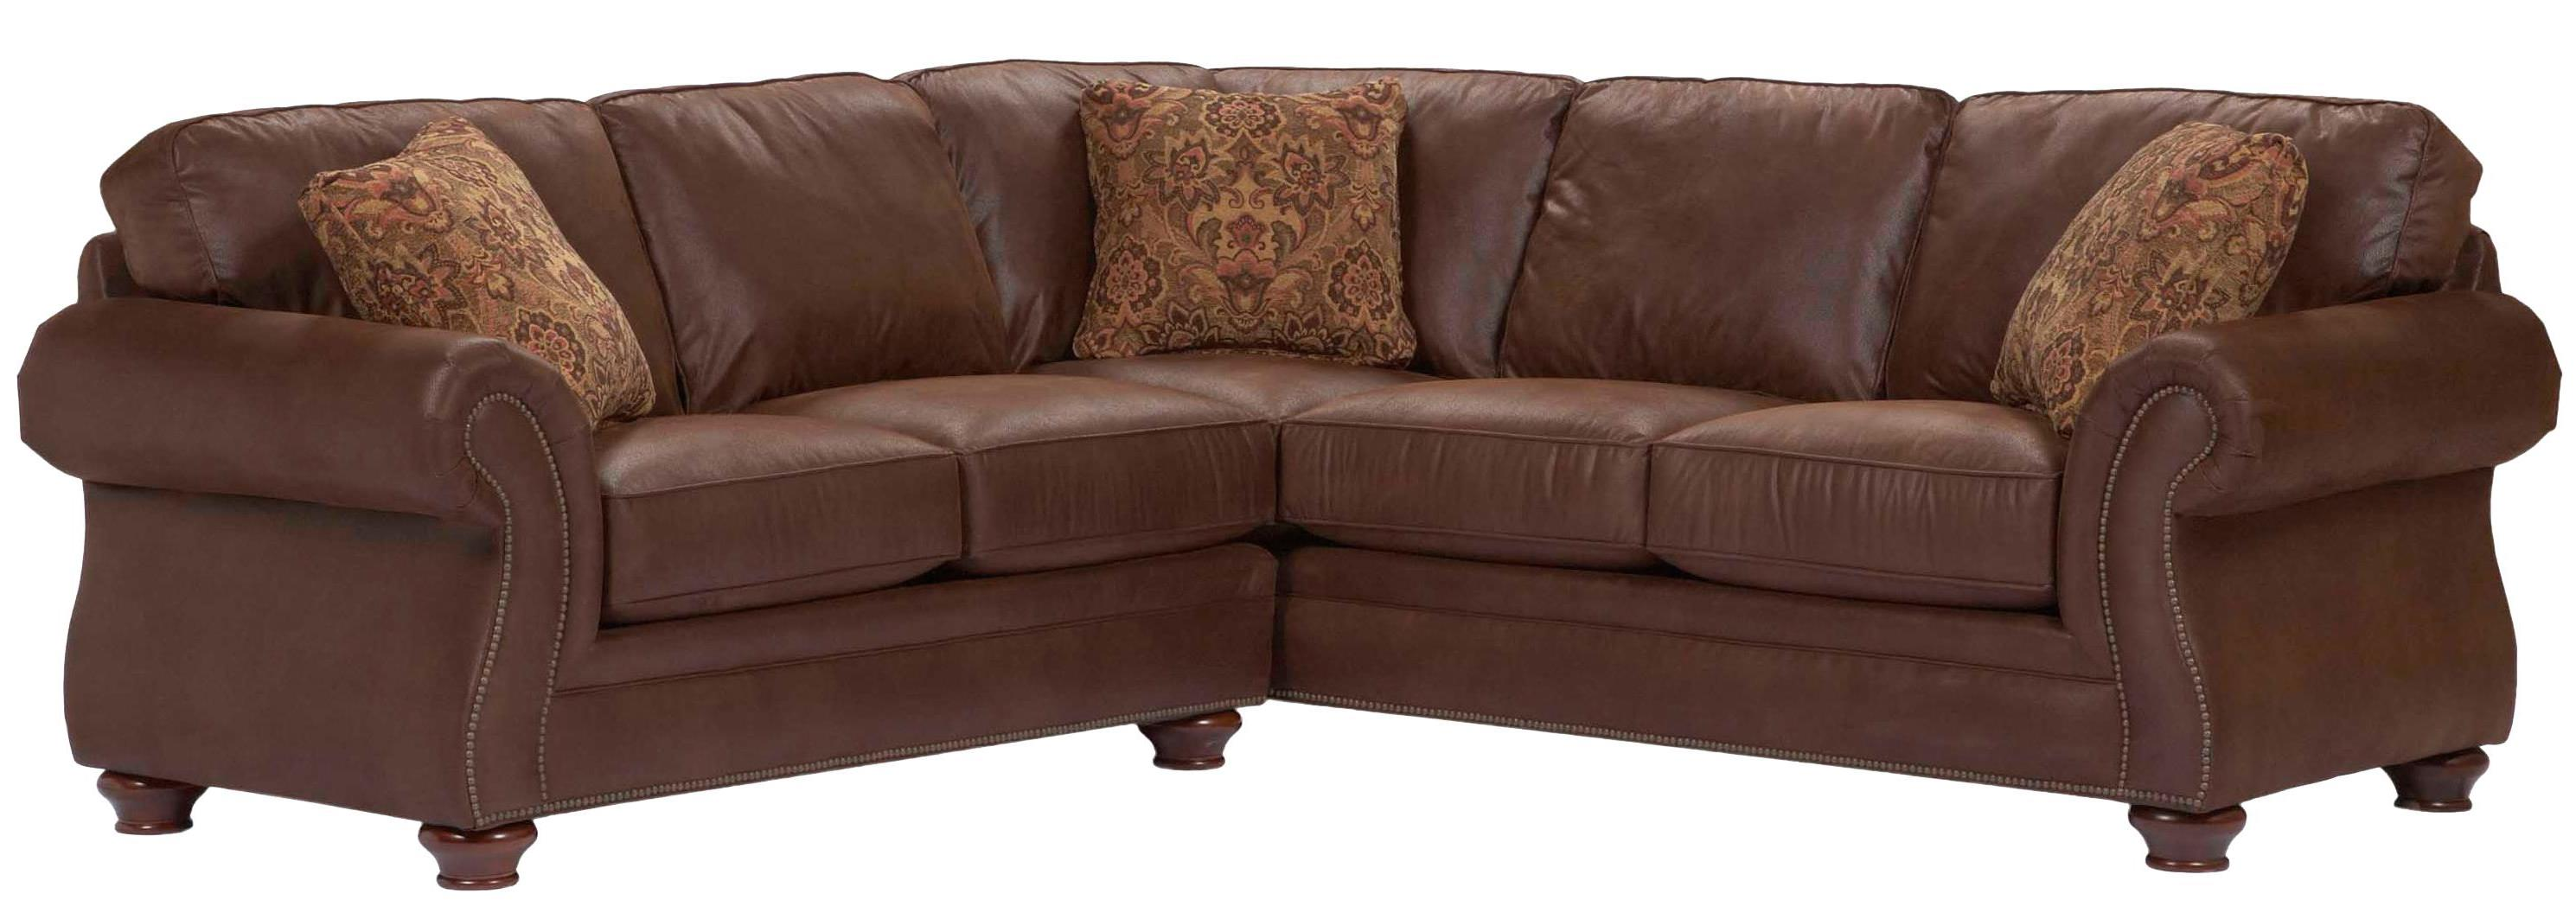 Broyhill Furniture Laramie Sectional Sofa - Item Number: 5080-2+3